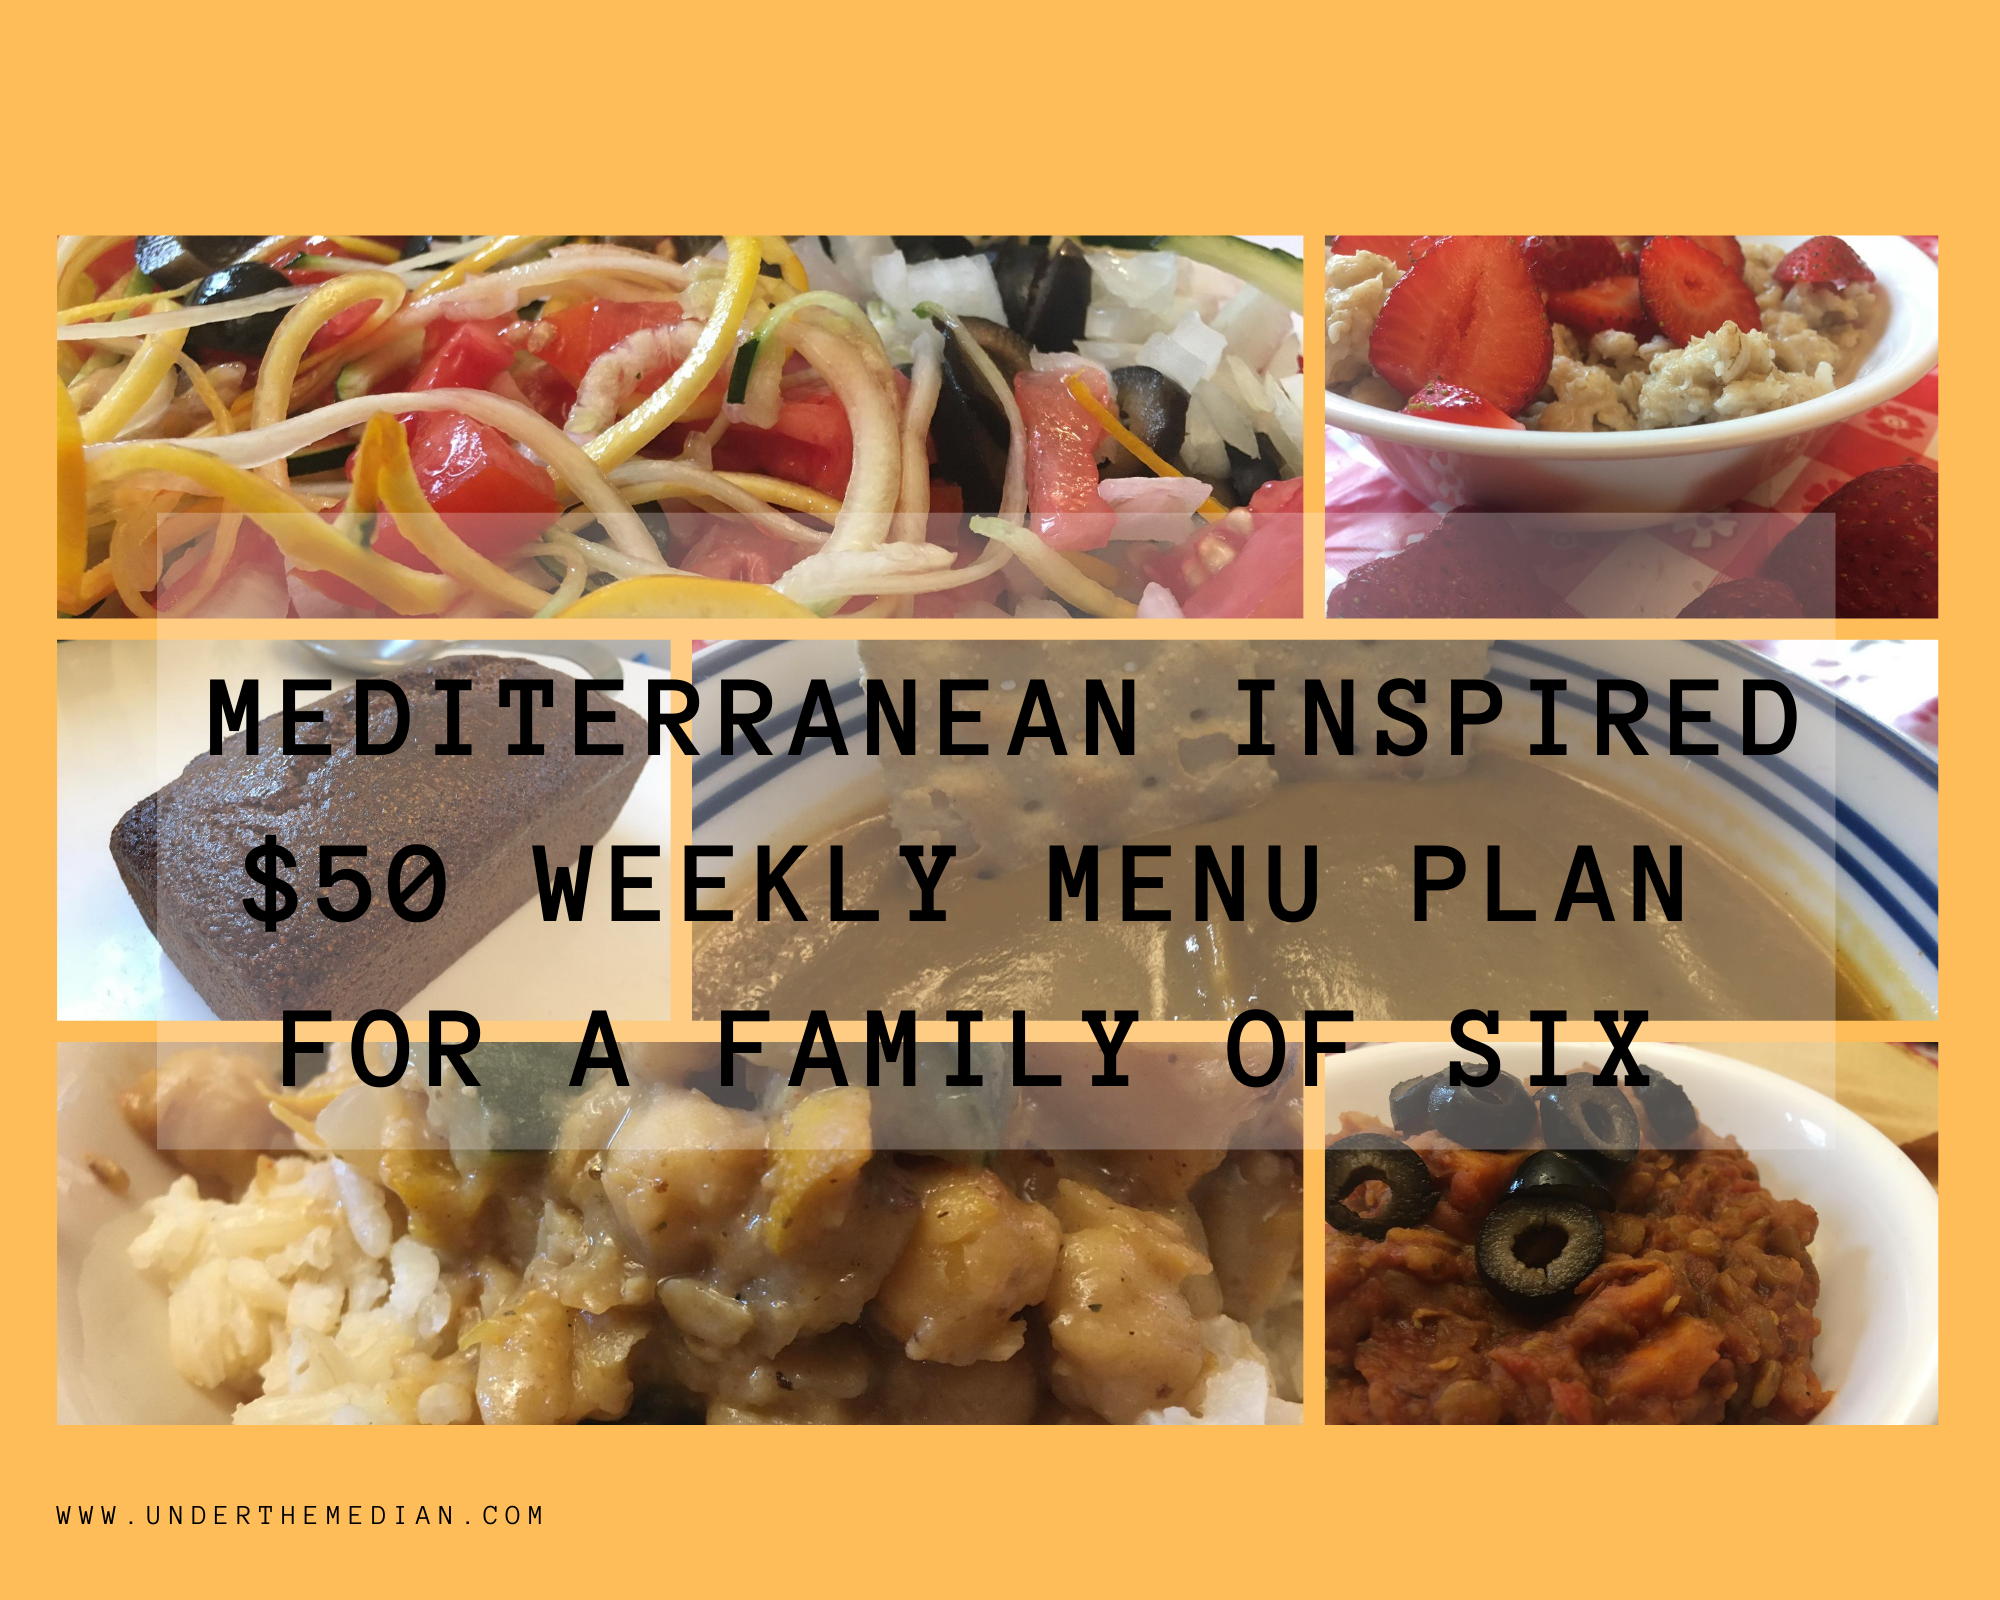 Mediterranean Inspired $50 Weekly Menu for a Family of Six